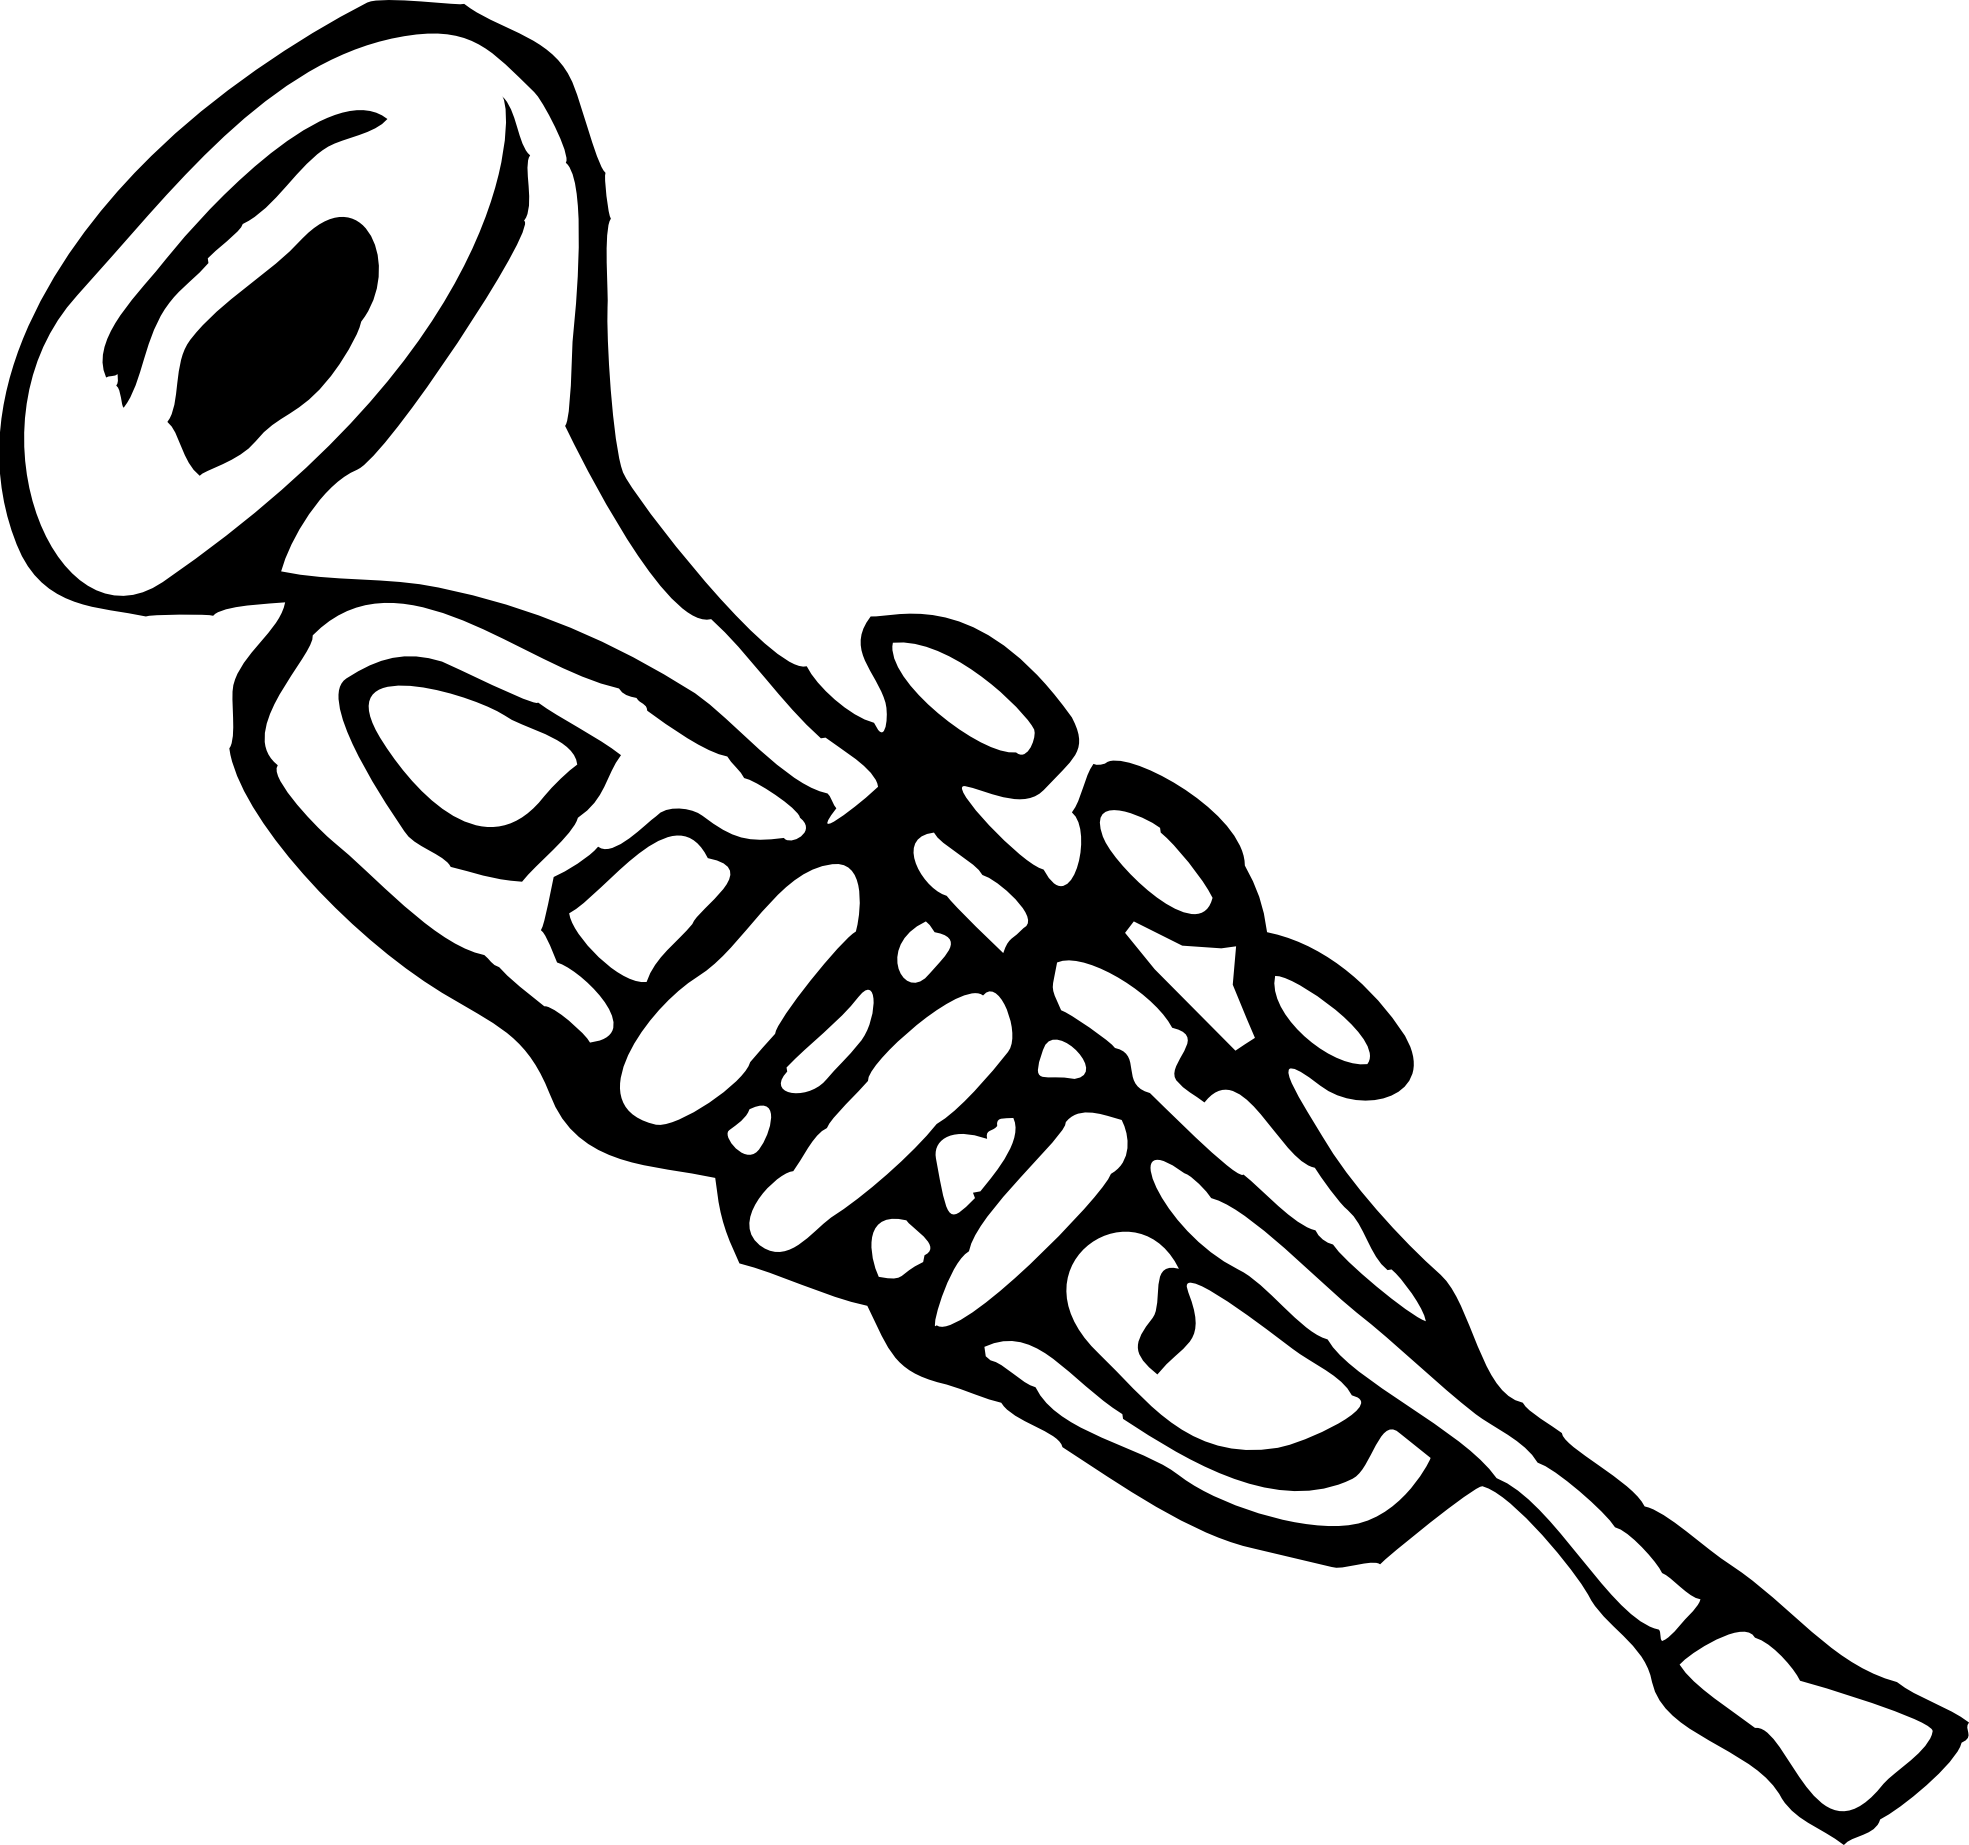 Black and white party horn drawing png. Collection of clipart